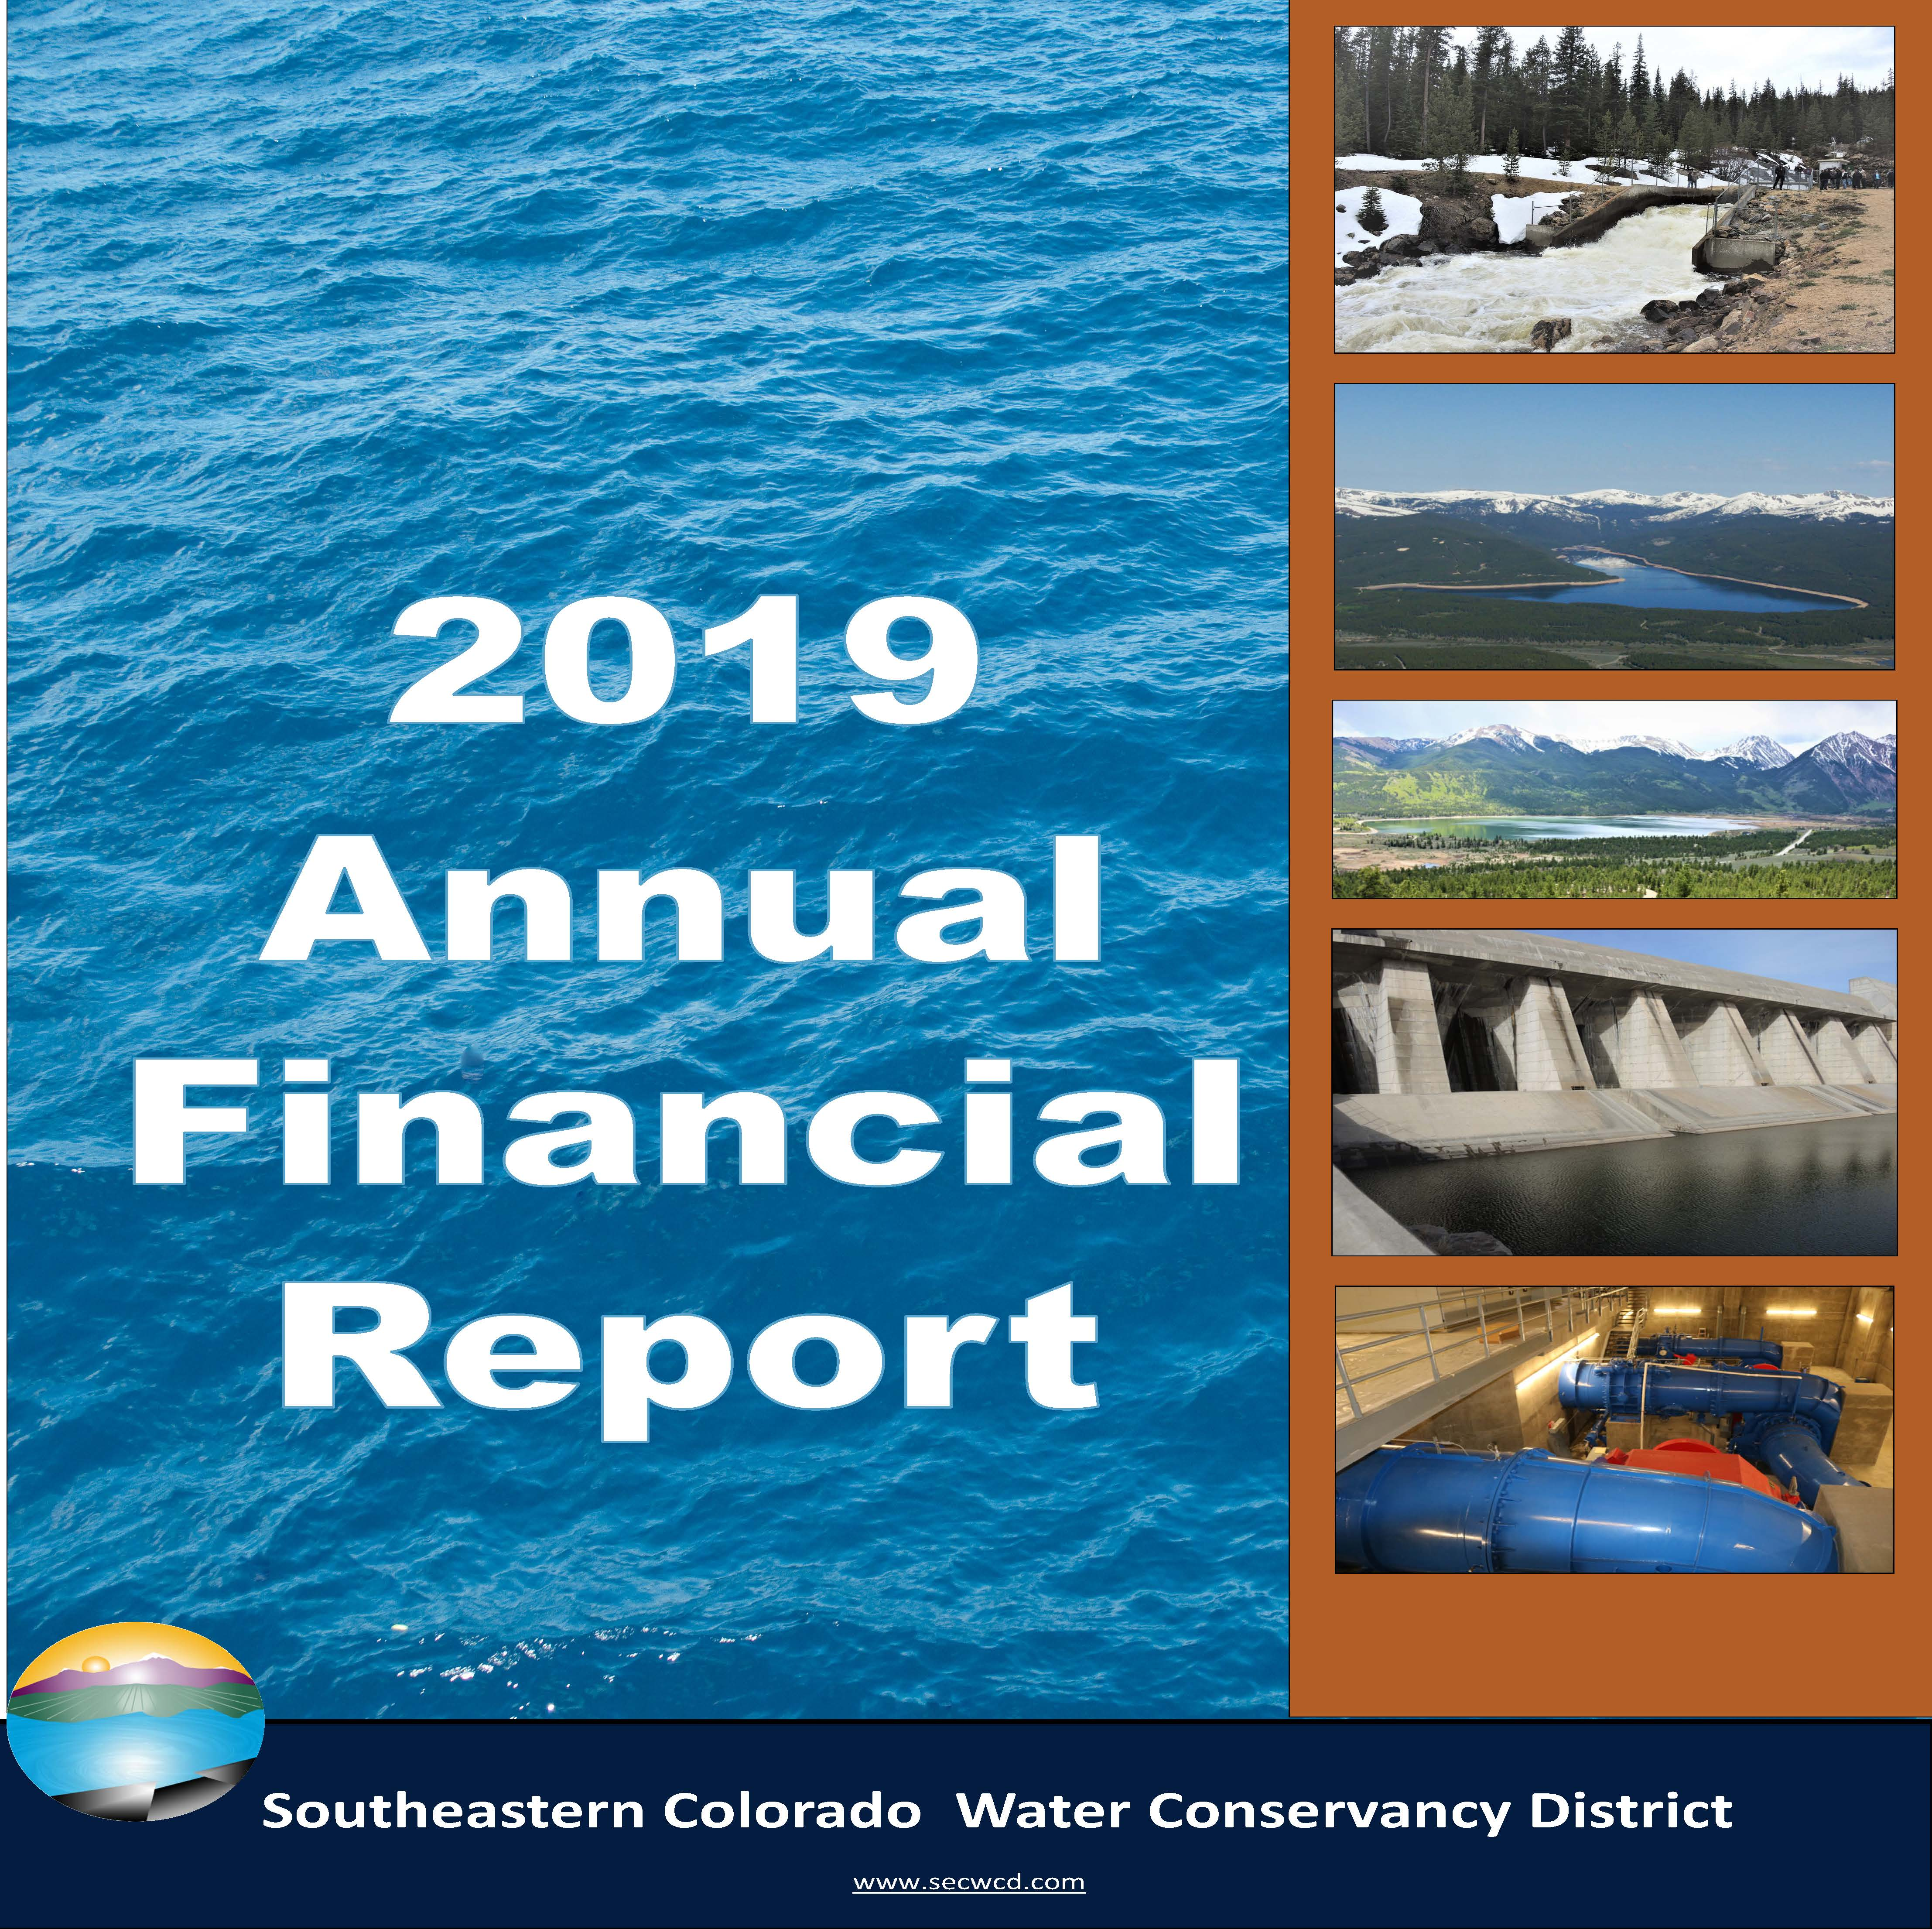 2019 Annual Financial Report